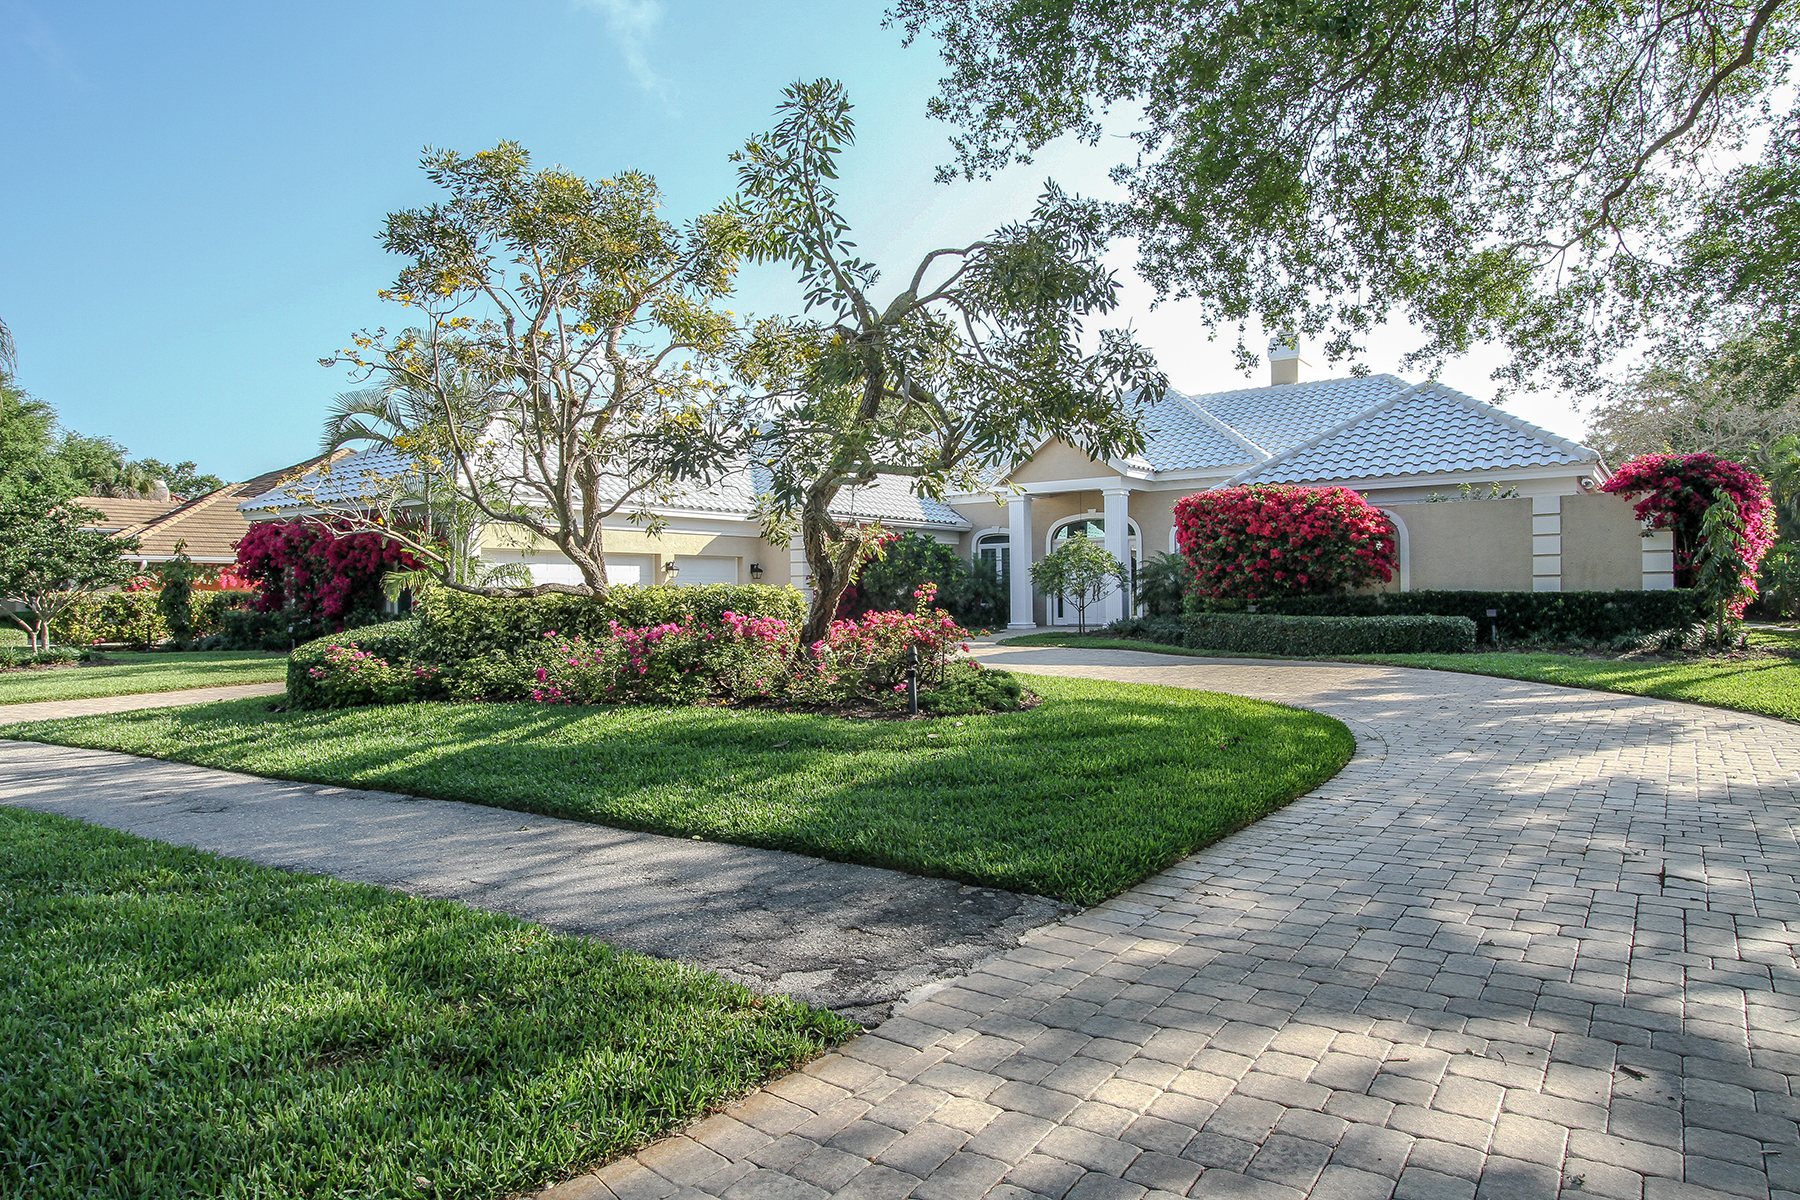 Single Family Home for Rent at PELICAN BAY - BARRINGTON CLUB 6974 Greentree Dr, Naples, Florida 34108 United States